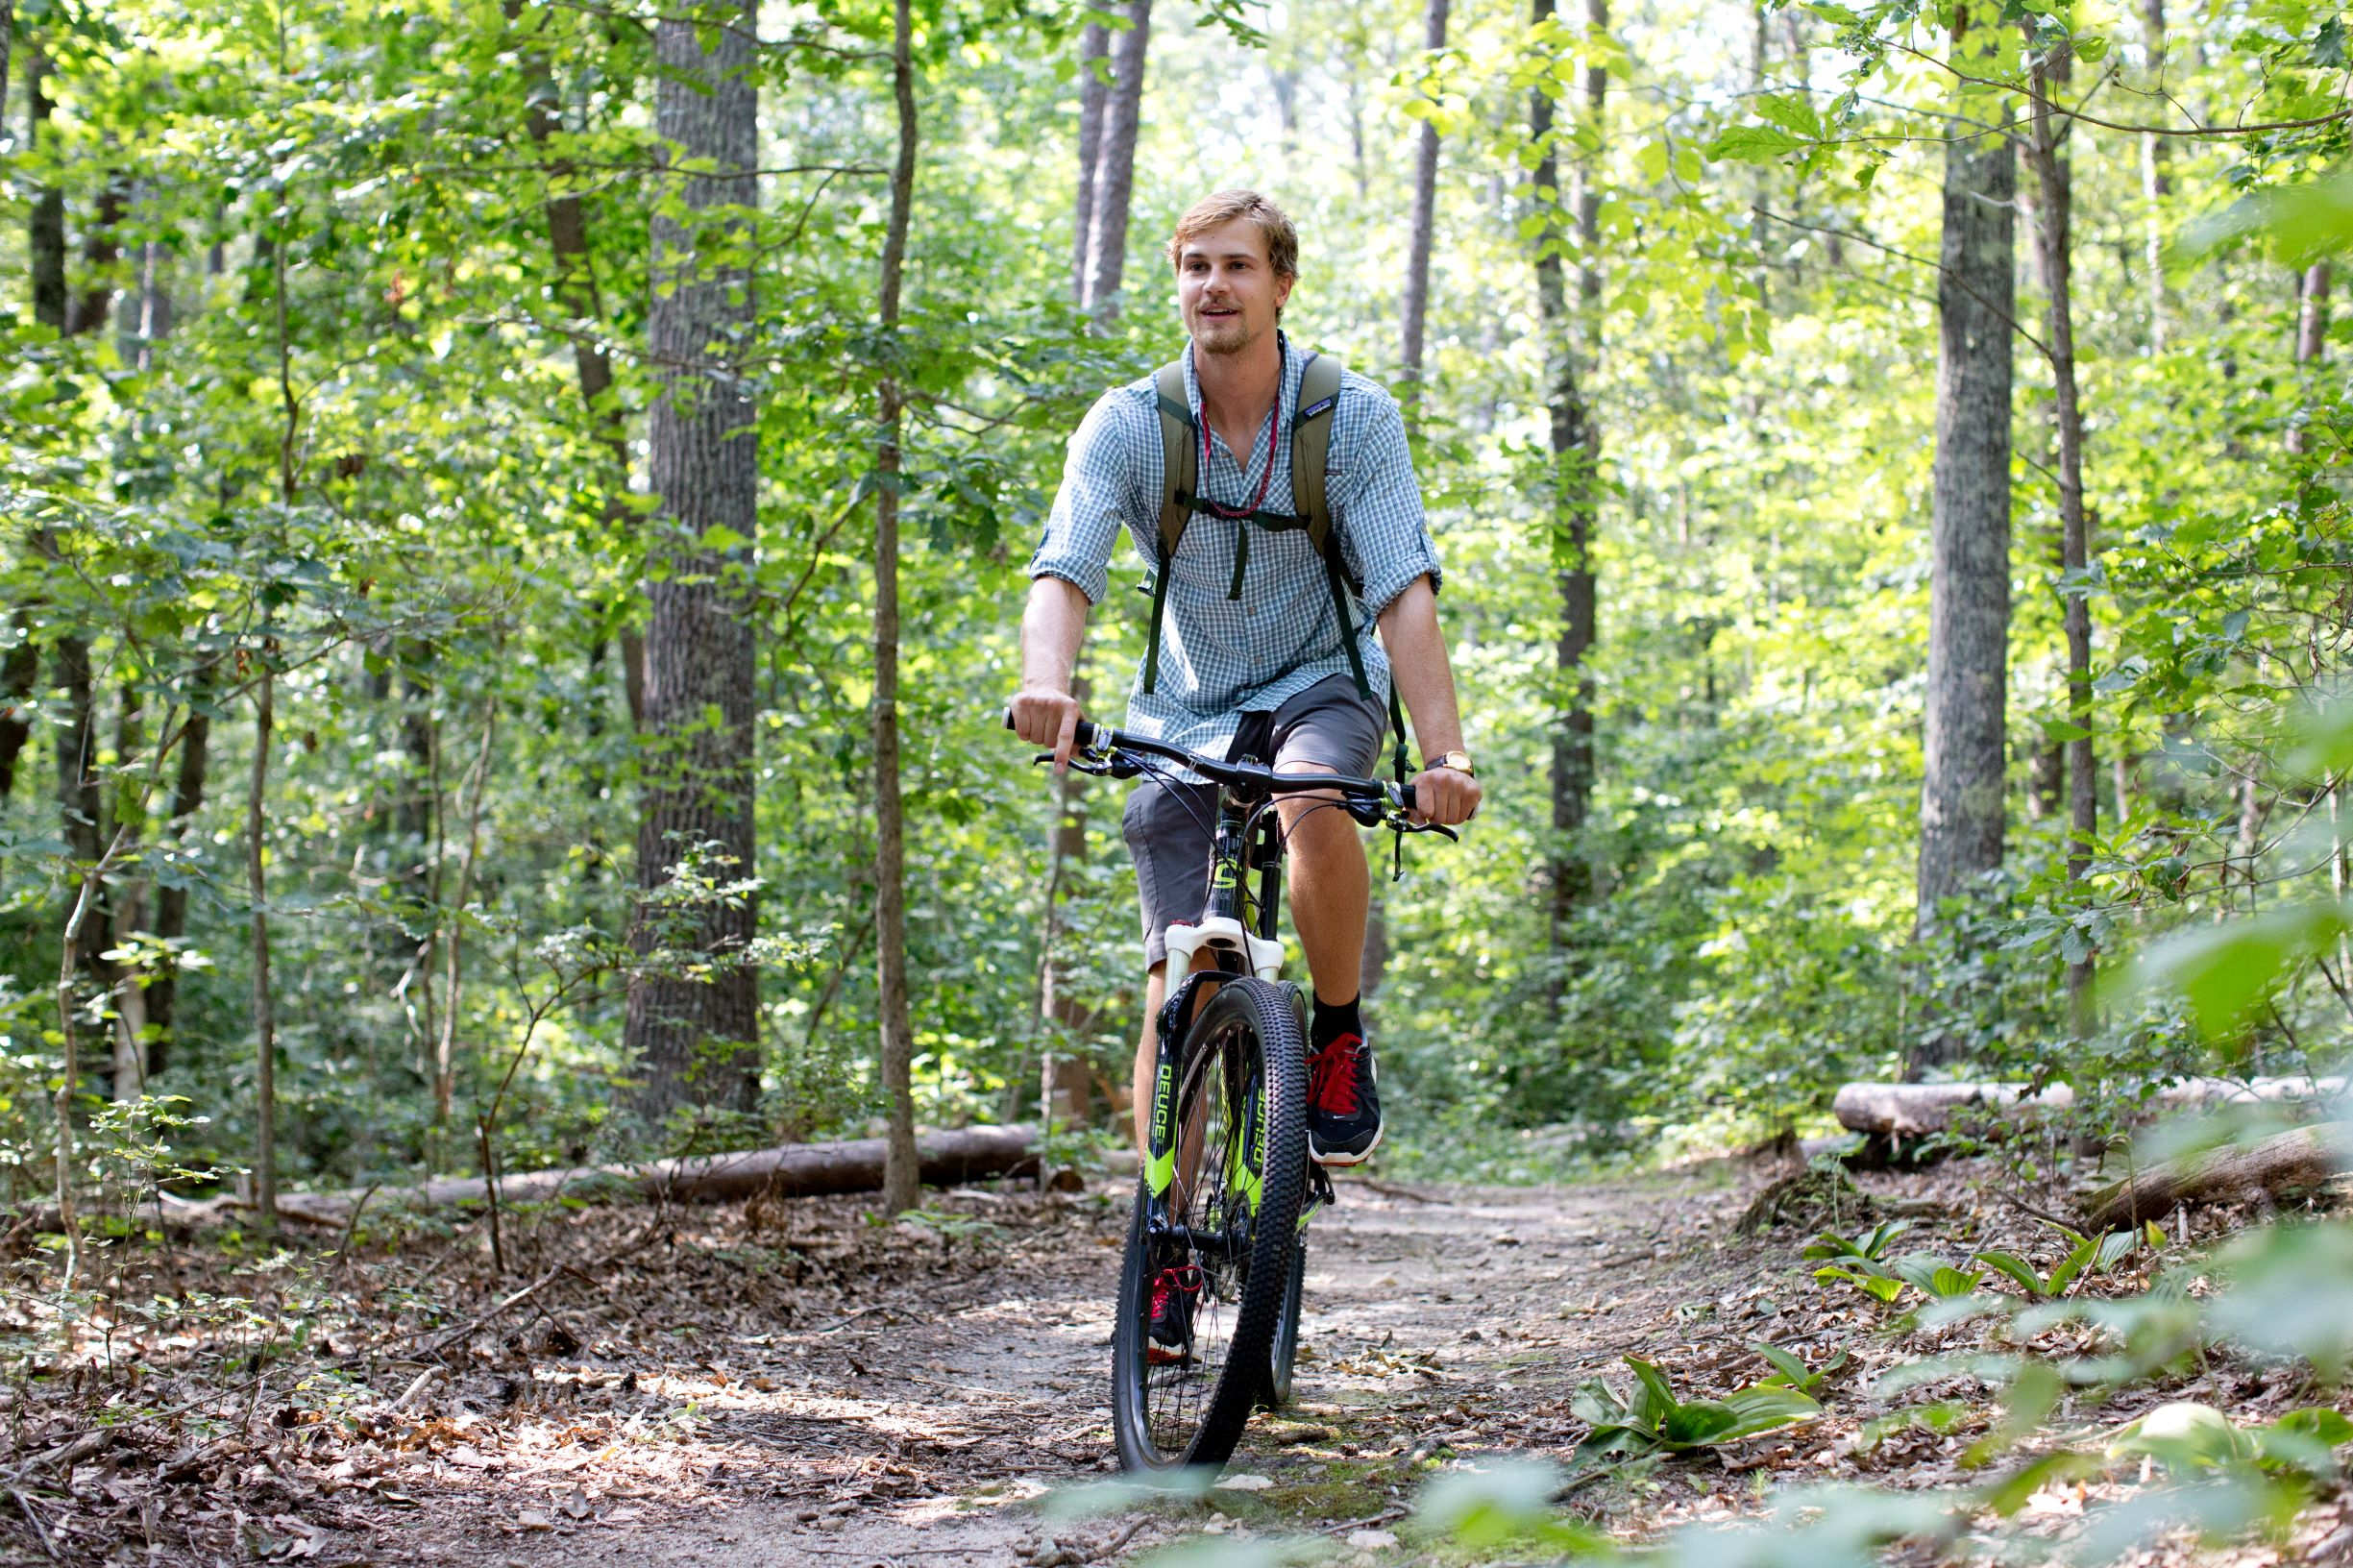 This is a man mountain biking on the Wilson Trail in Hampden-Sydney, Virginia